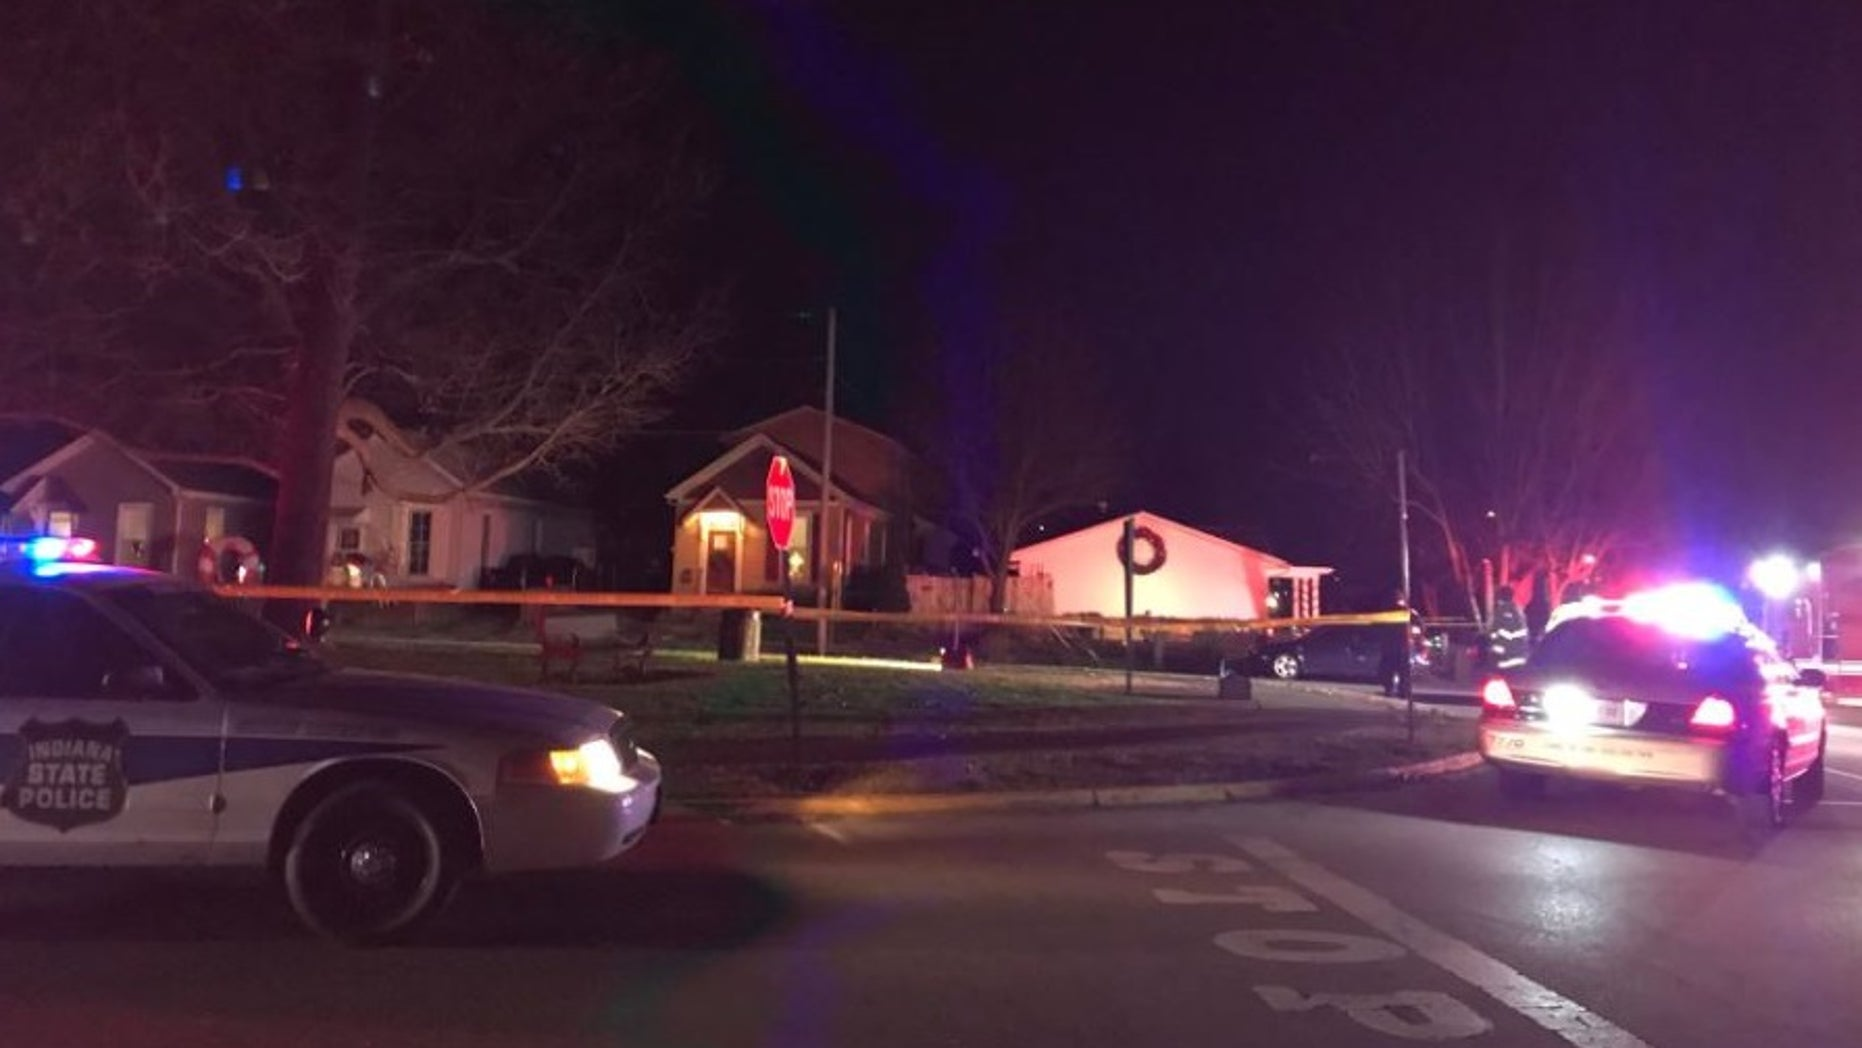 An Indiana State Police trooper is expected to survive after he was shot in the head Tuesday night, authorities said.